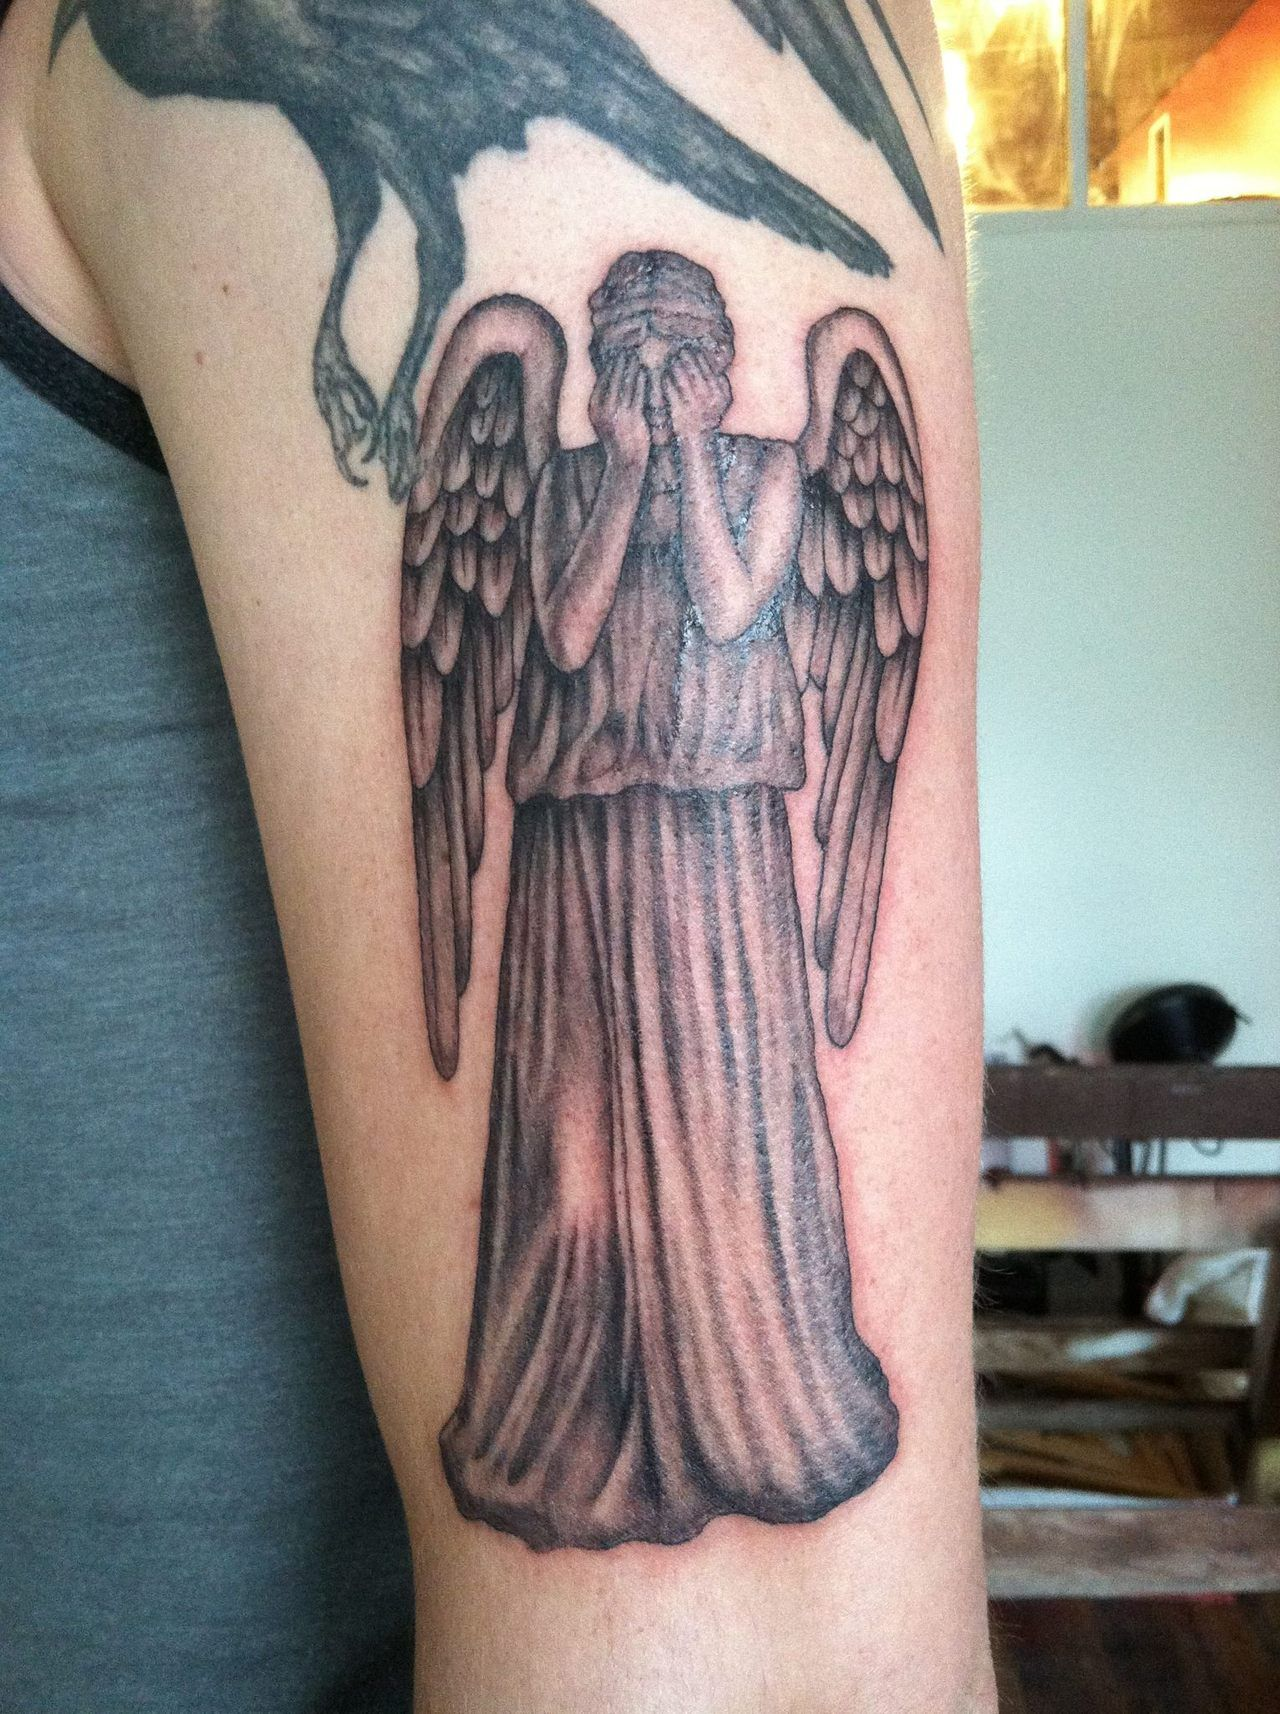 Images For > Weeping Angel Doctor Who Tattoo